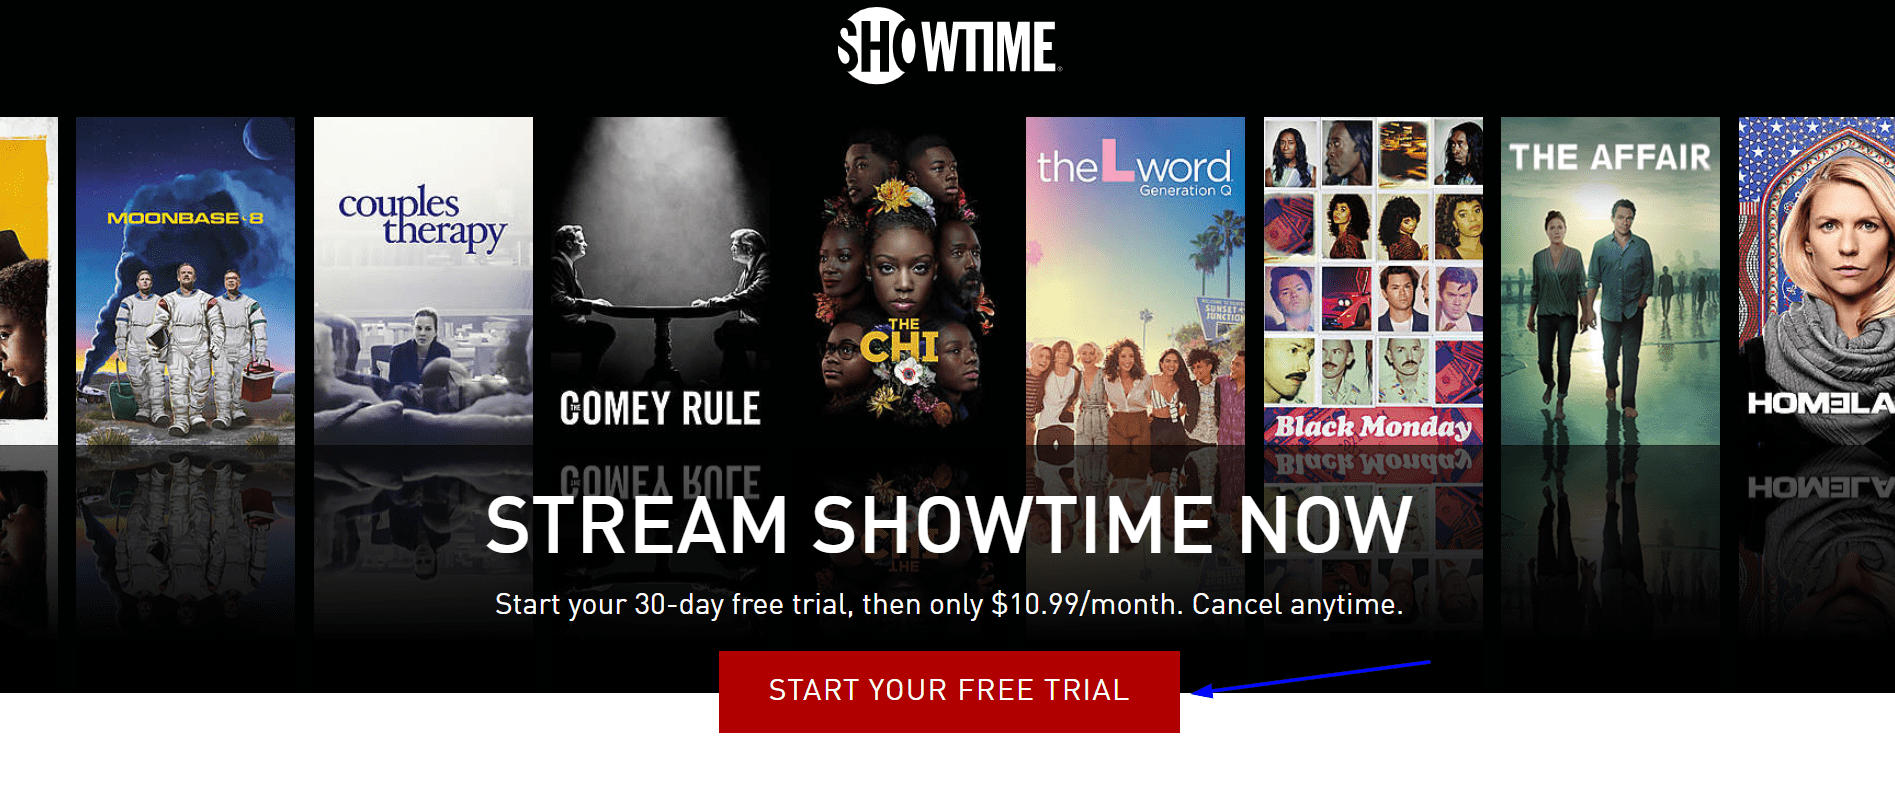 ShowTime start your free trial